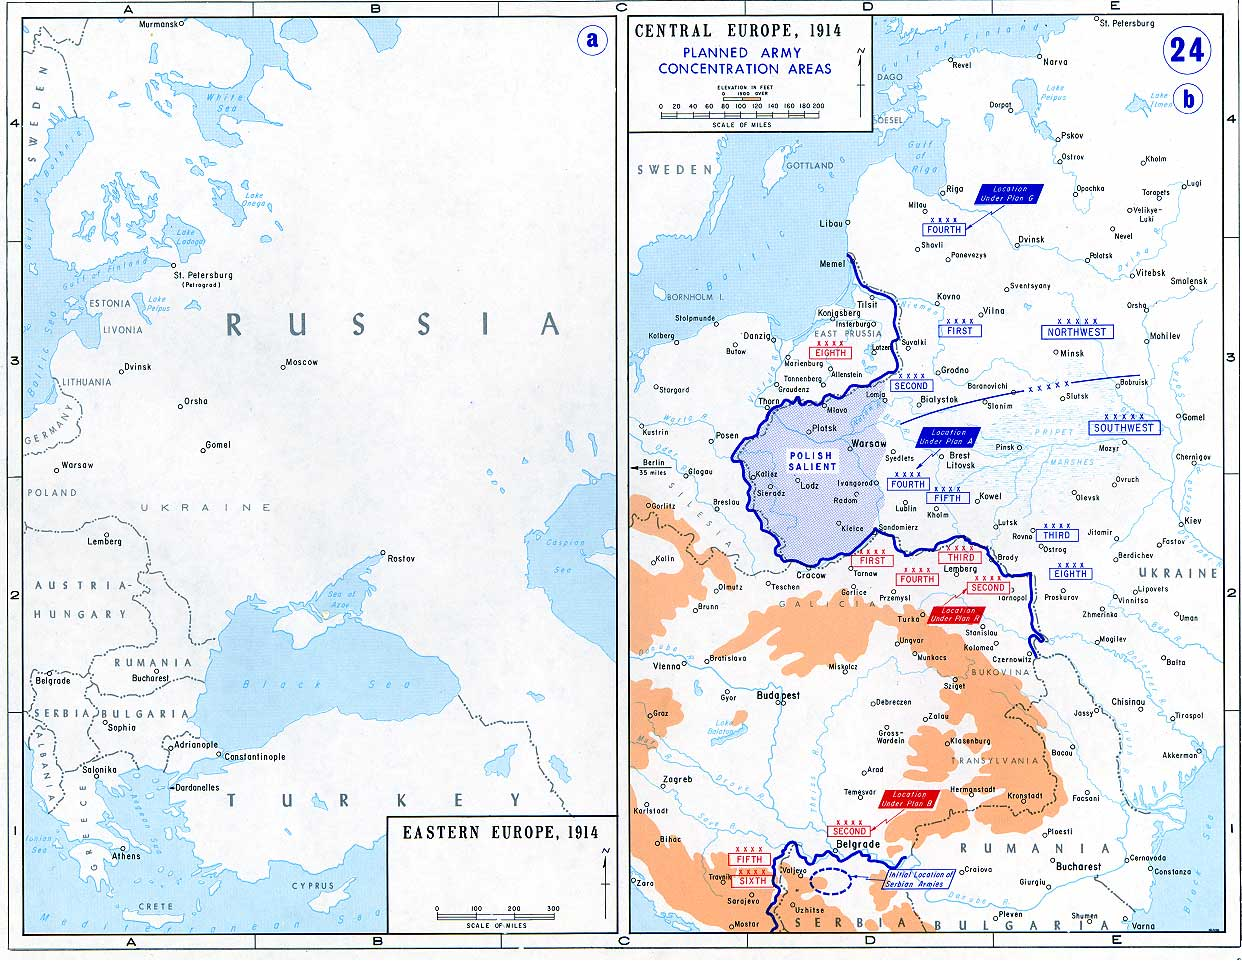 24 eastern europe 1914 and planned army concentration areas in central europe 1914